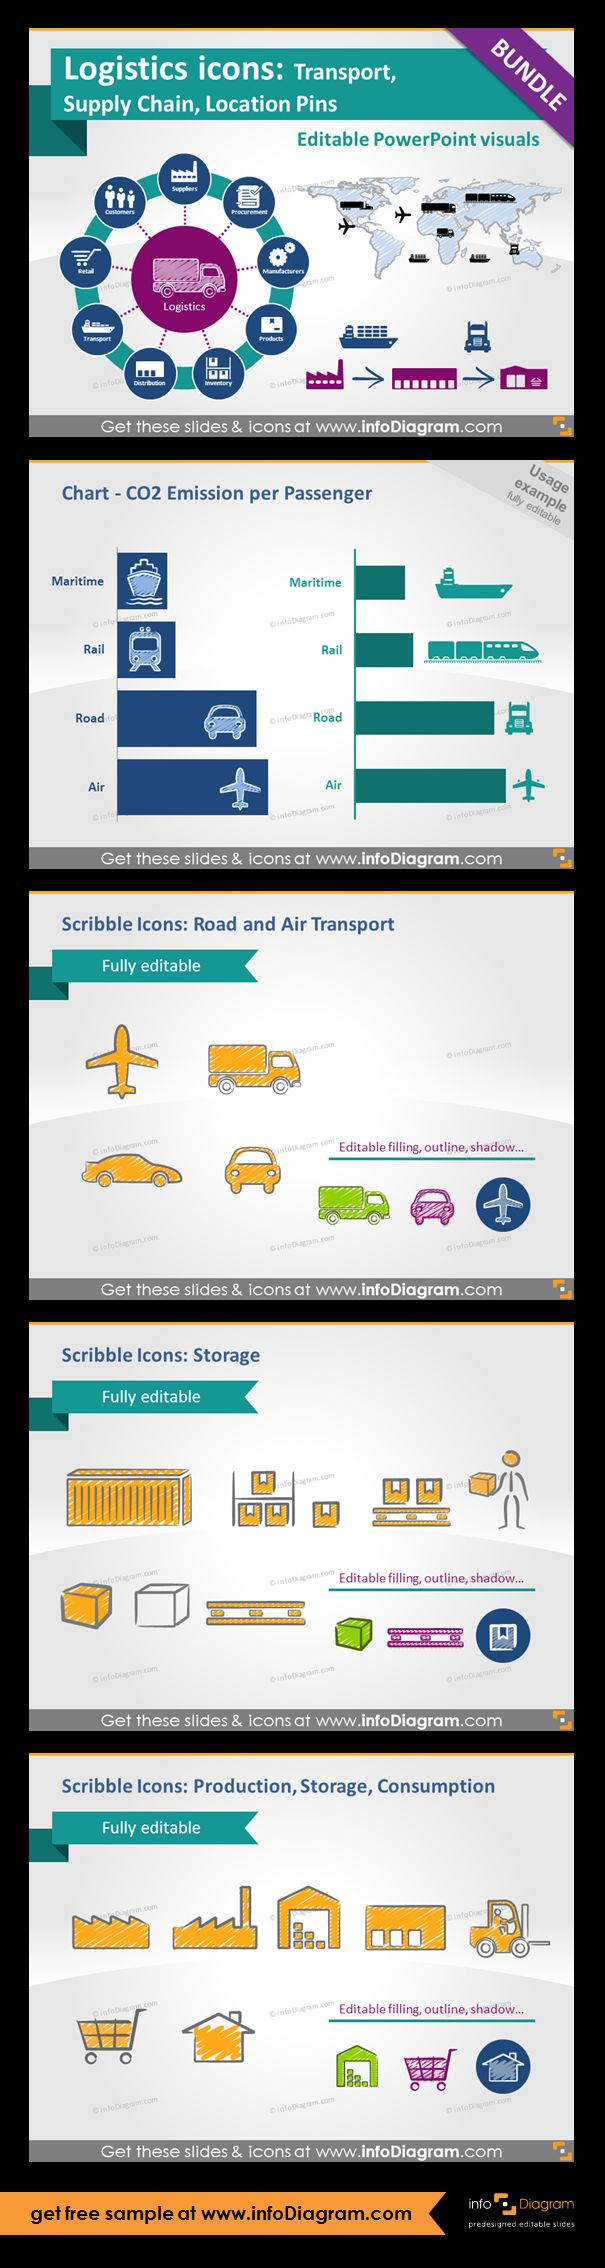 Logistics scribble graphics: road and air transport, storage (boxes and palettes), production, storage and consumption symbols. CO2 emission per passenger chart example.